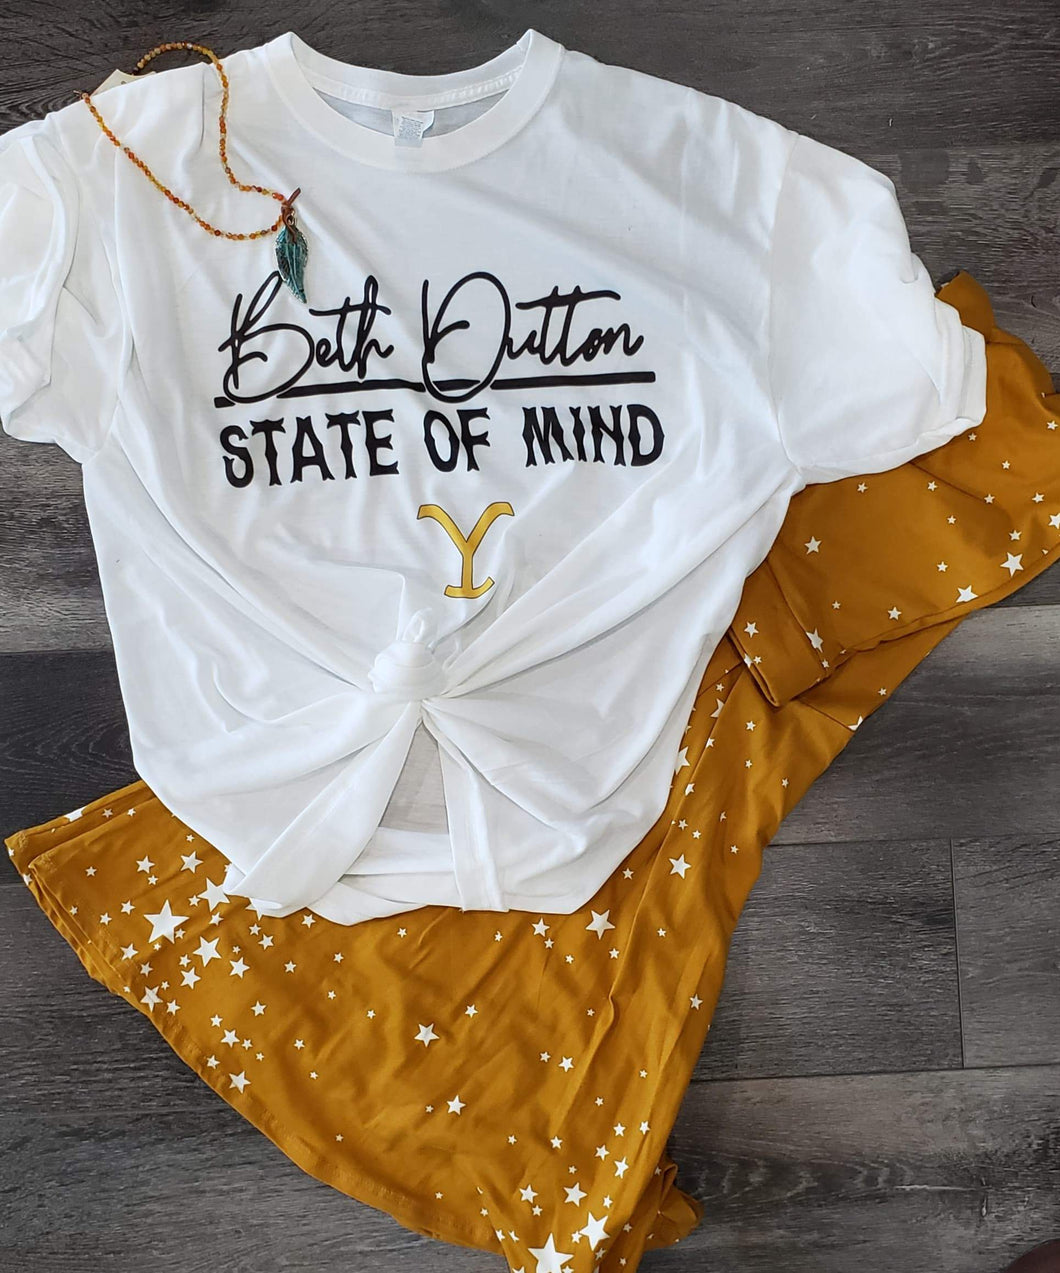 Graphic T-Shirt Short Sleeve Beth Dutton State of Mind